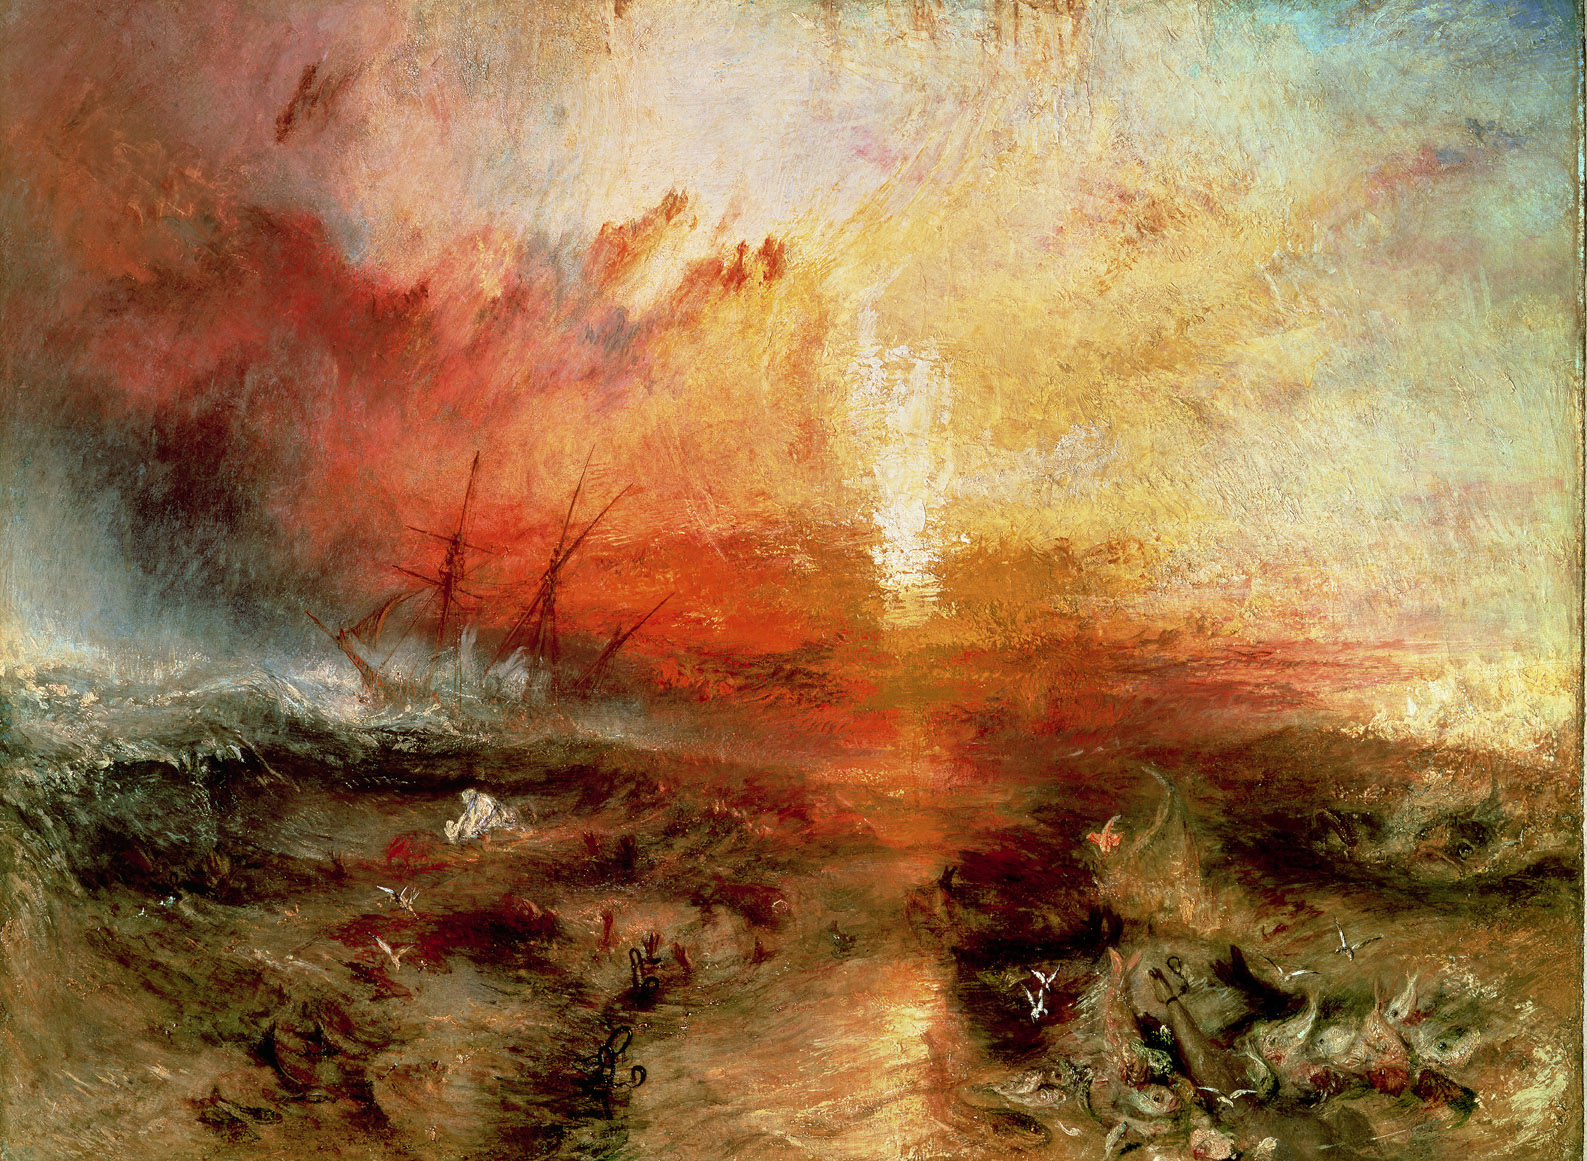 Slavers Throwing Overboard the Dead and Dying, Typhoon Coming On, by J. M. W. Turner, 1840.